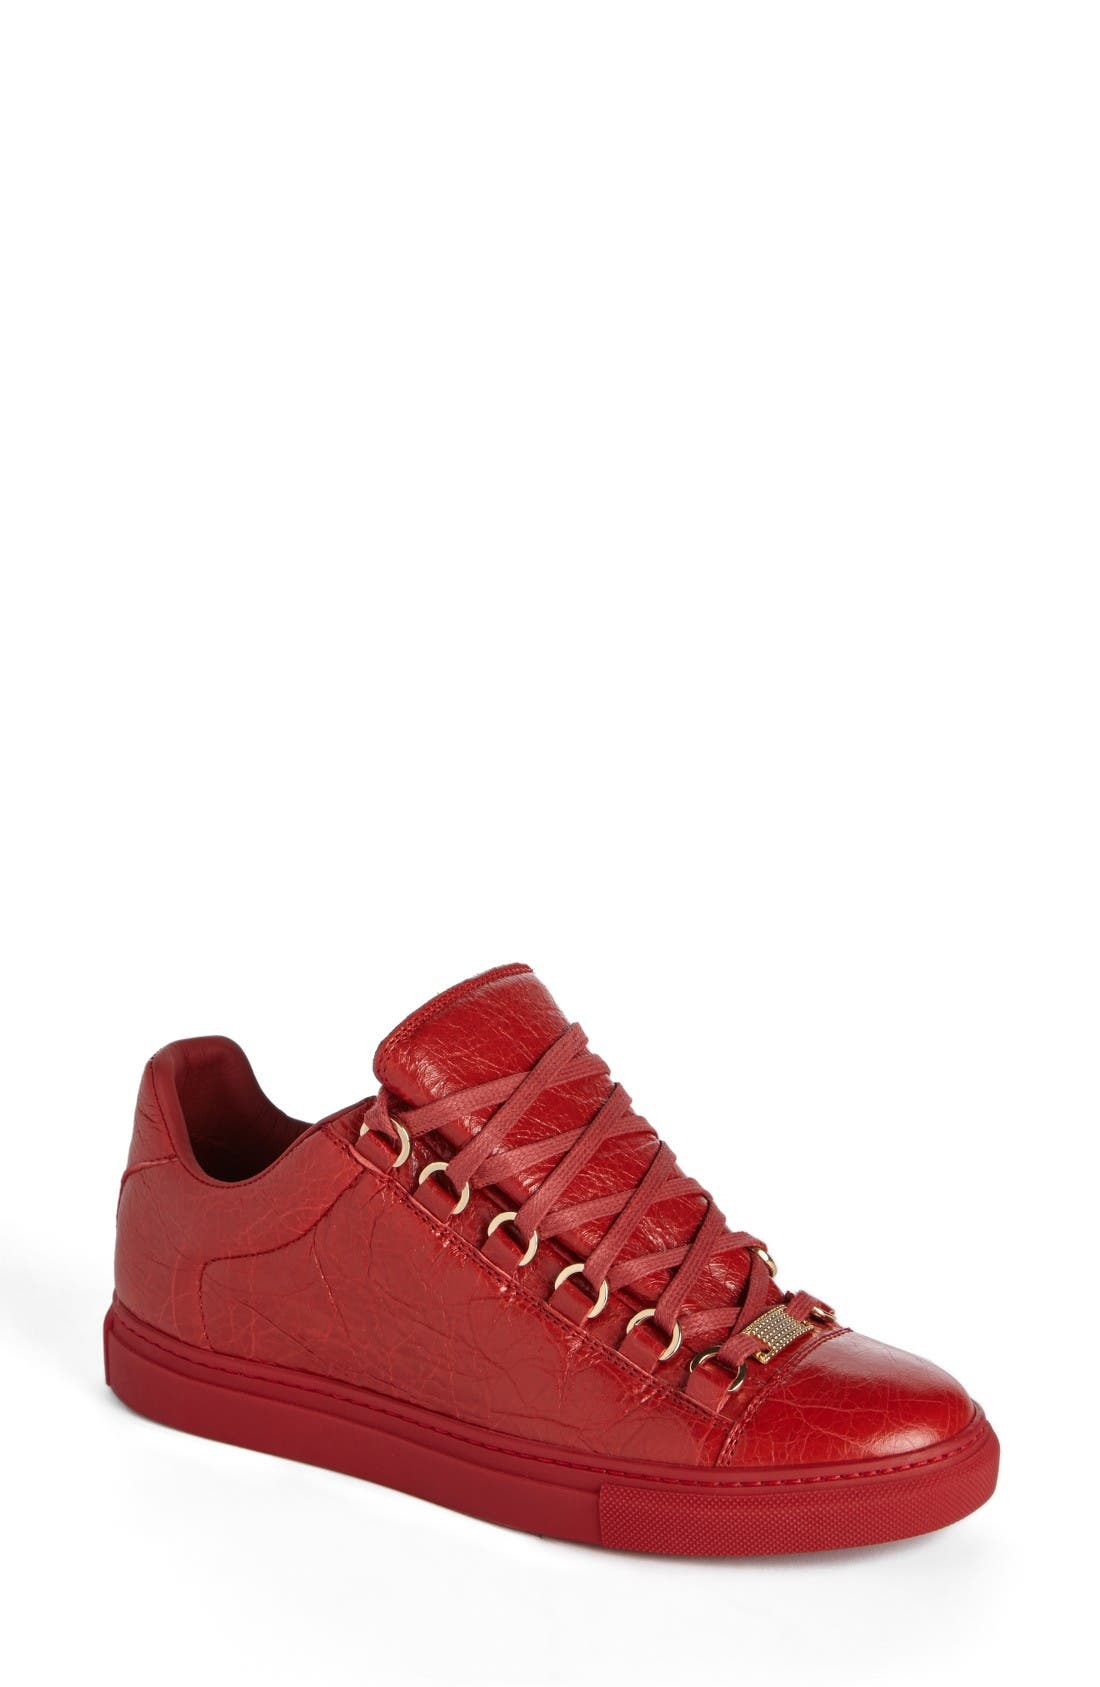 Low Top Sneaker,                             Main thumbnail 1, color,                             Red Leather